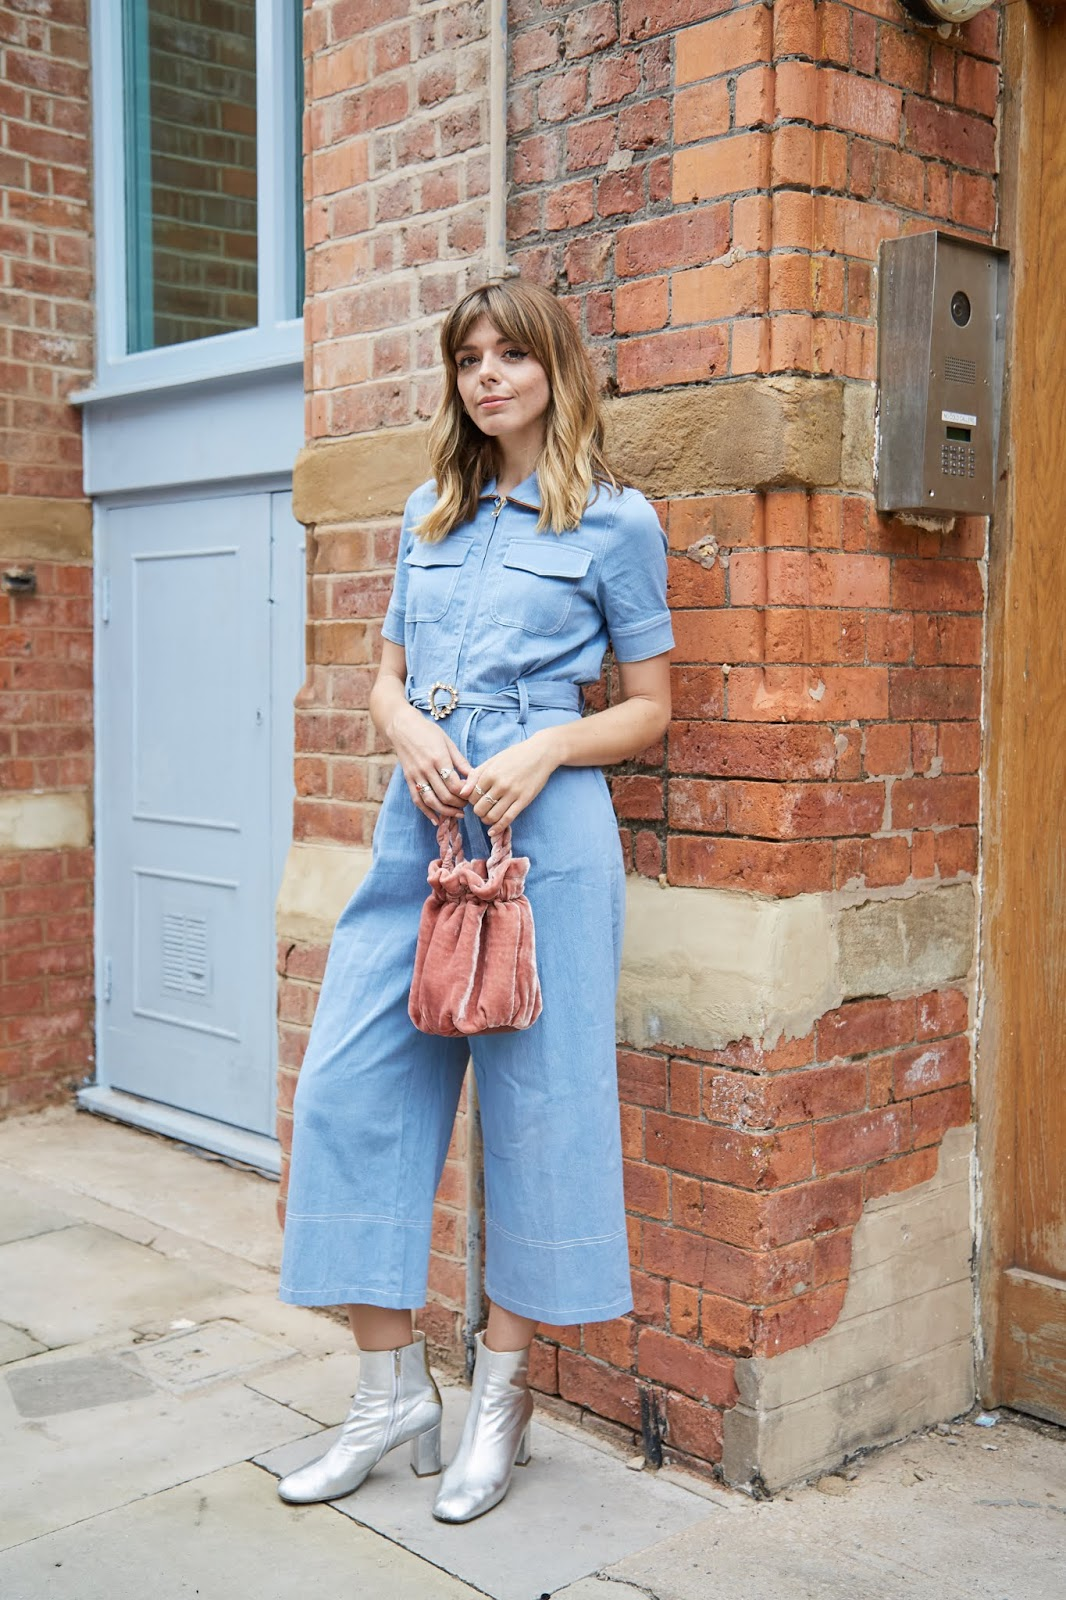 76cd0714aee0 As your boiler suit is basically ready to go from the offset I think a  statement boot is definitely needed to make this outfit your own. I ve gone  for my ...